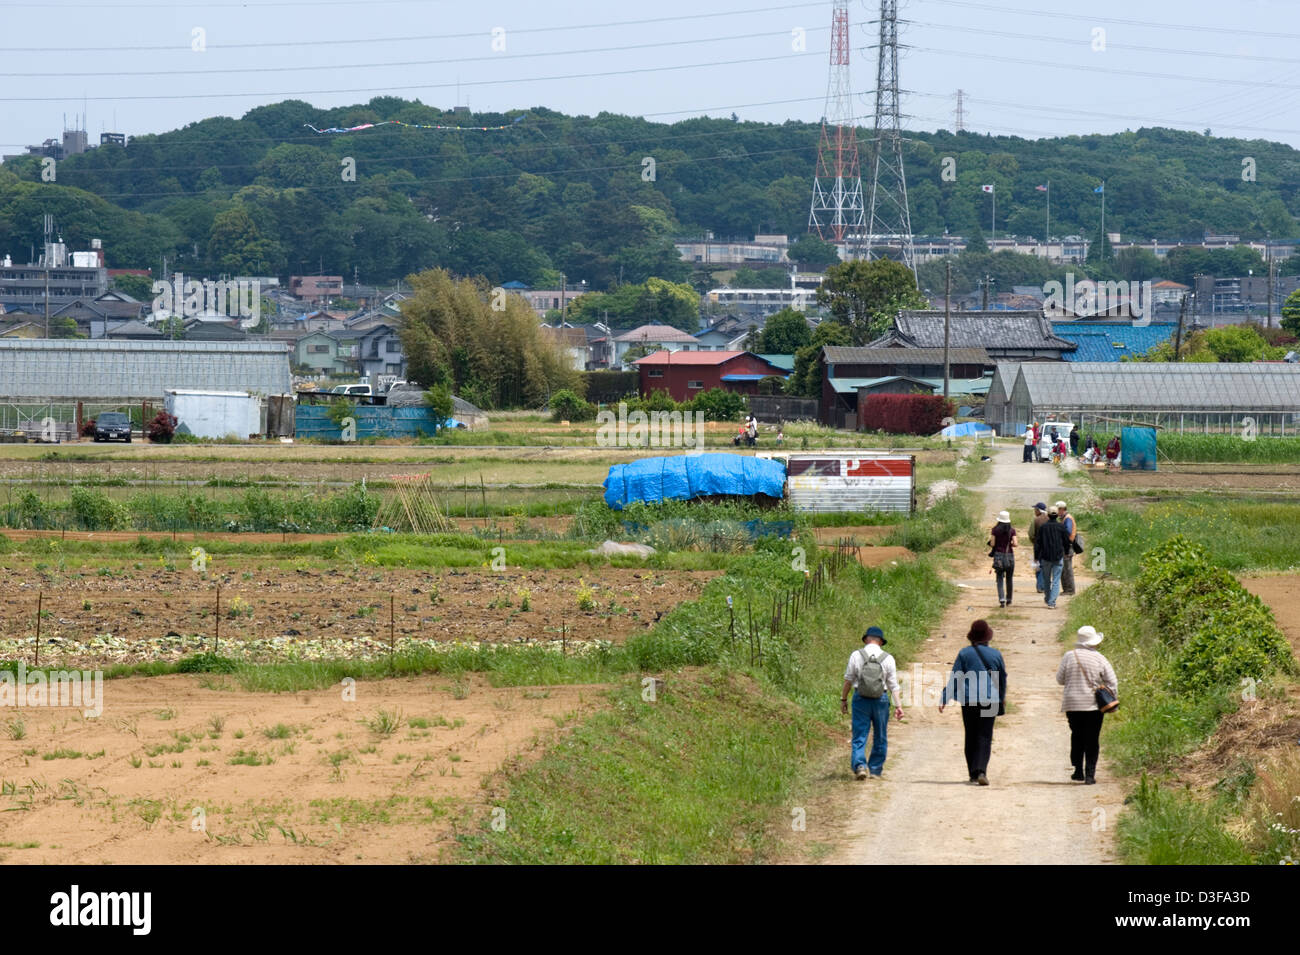 High tension power lines run across the countryside farm fields and neighborhoods of rural Kanagawa Prefecture. Stock Photo